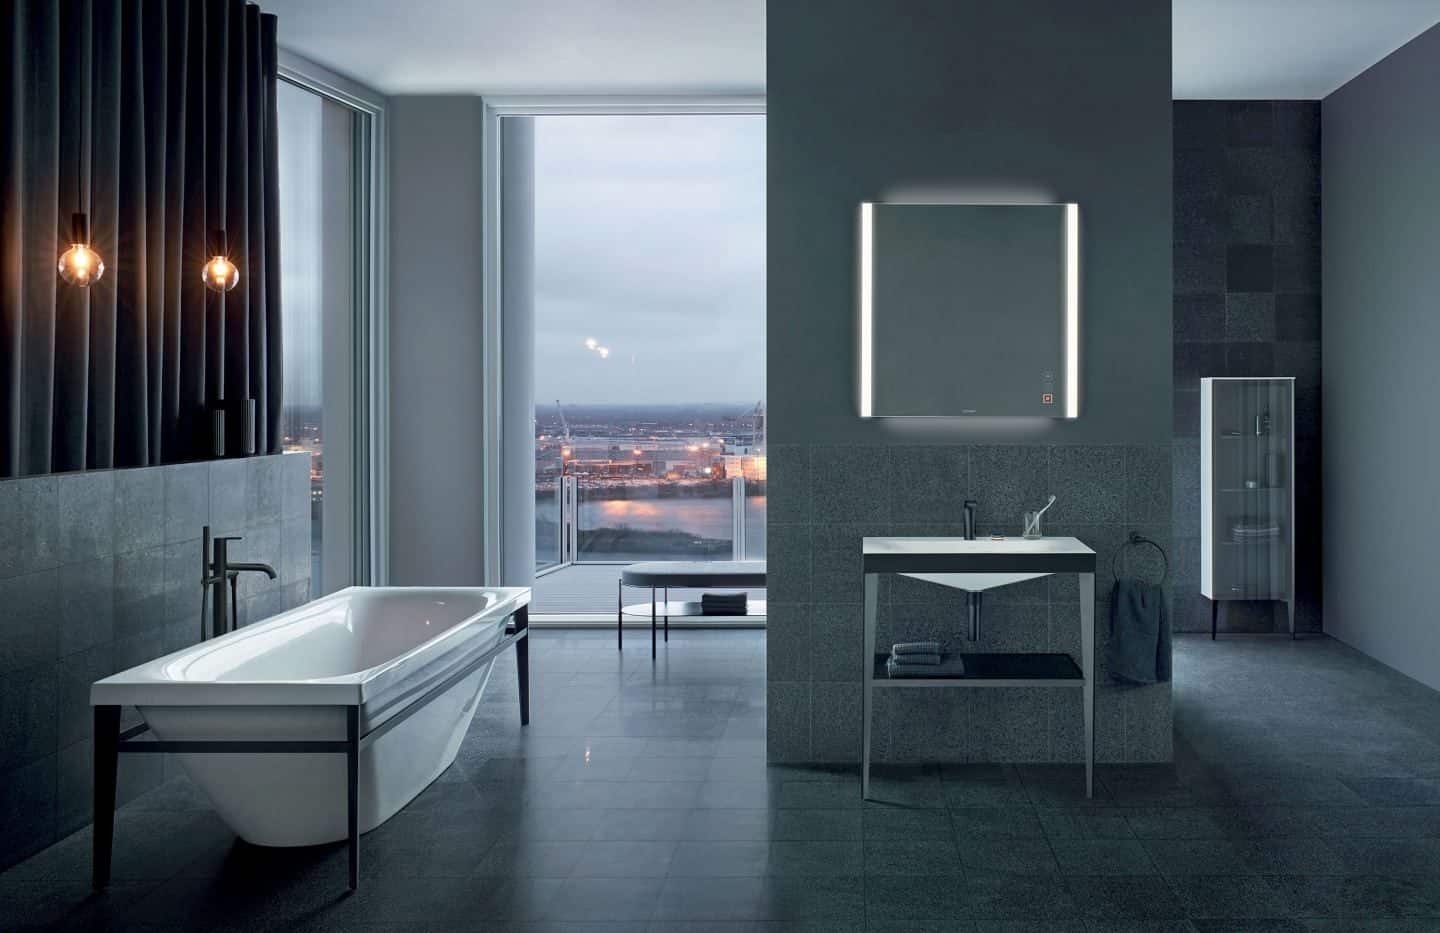 Viu and Xviu bathroom range from Luxury bathroom brand Duravit